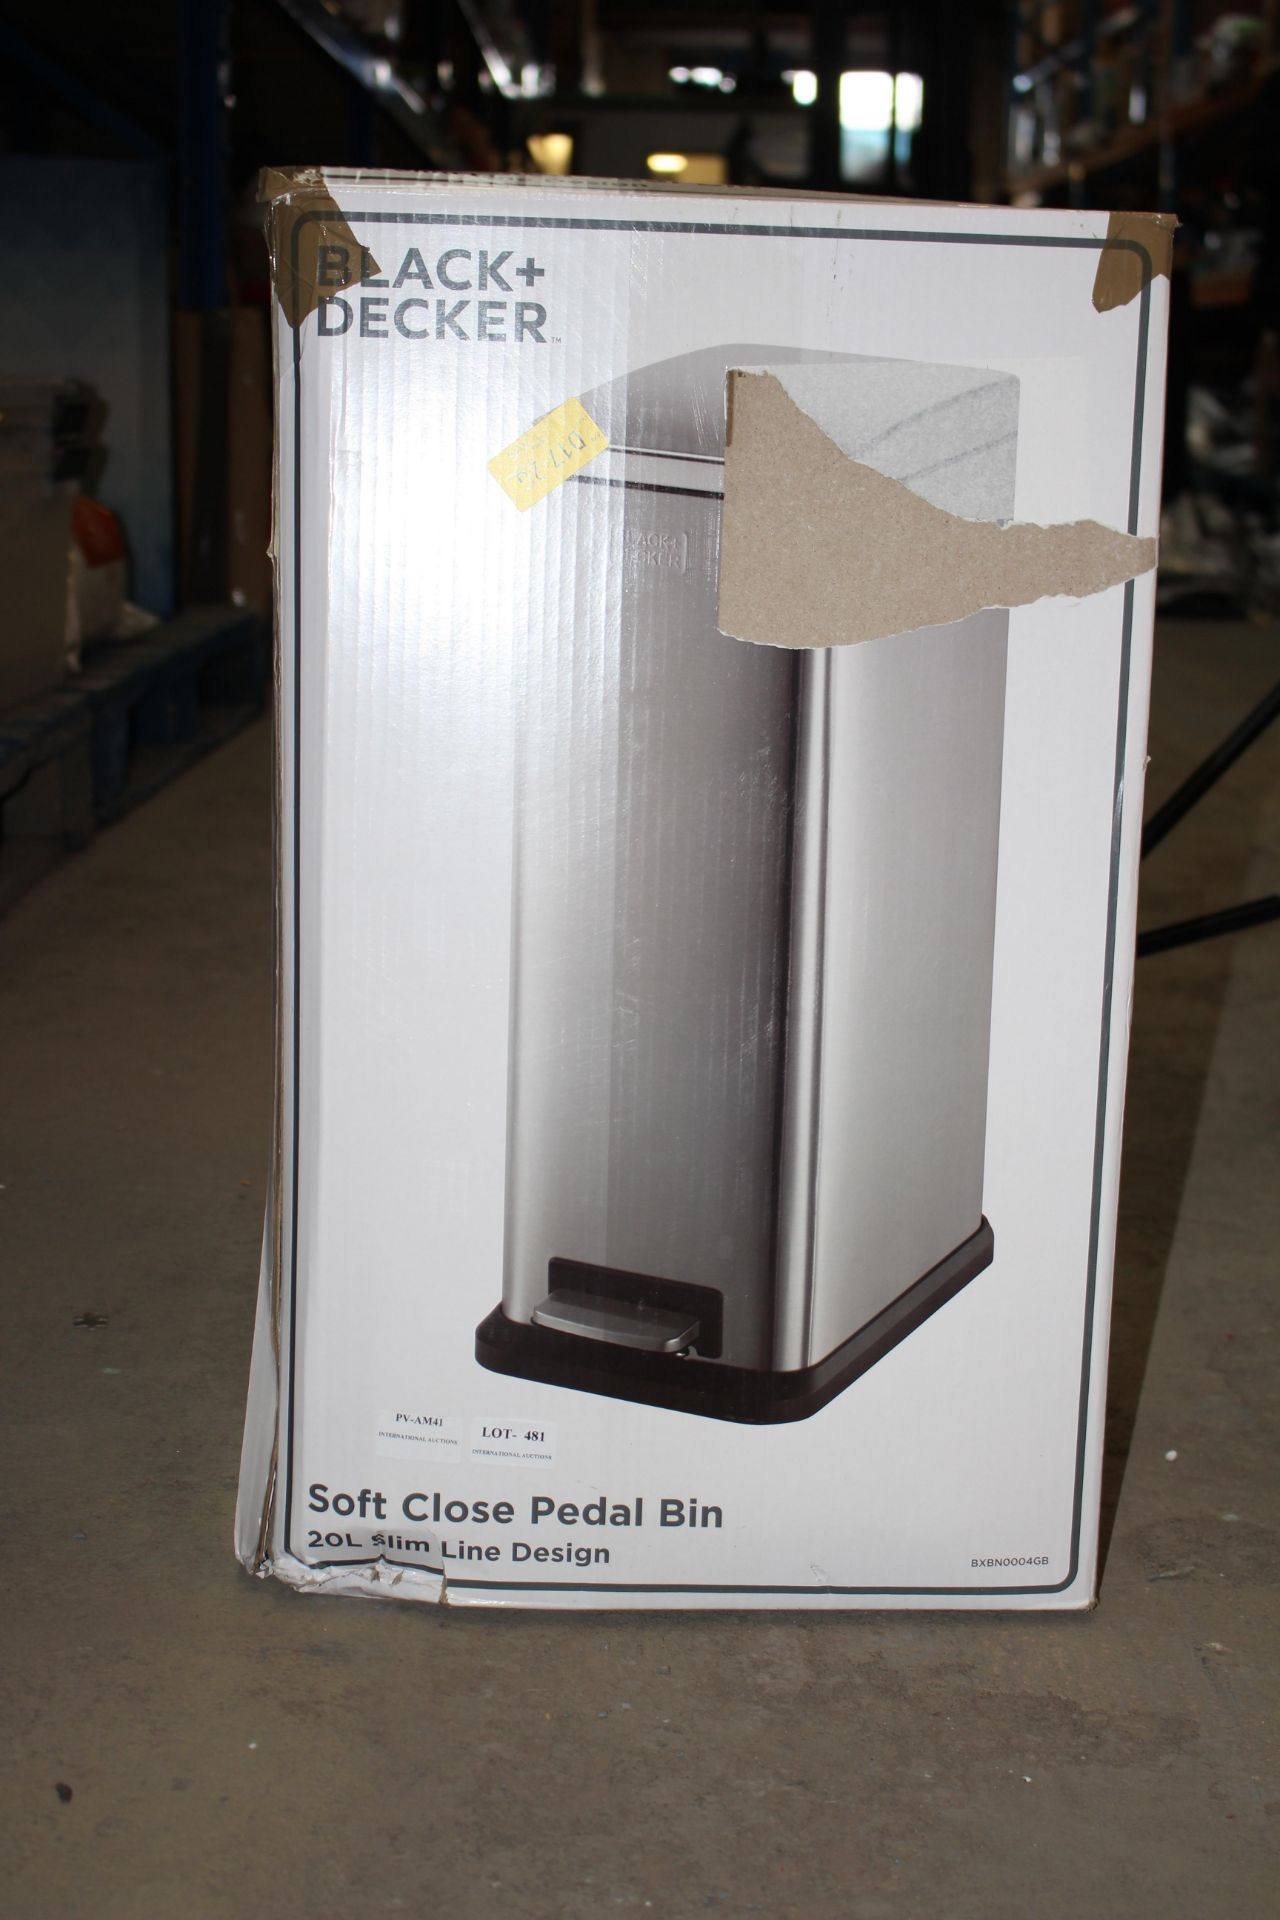 BOXED BLACK AND DECKER SOFT CLOSE PEDAL BIN, 20L SLIM Condition ReportAppraisal Available on